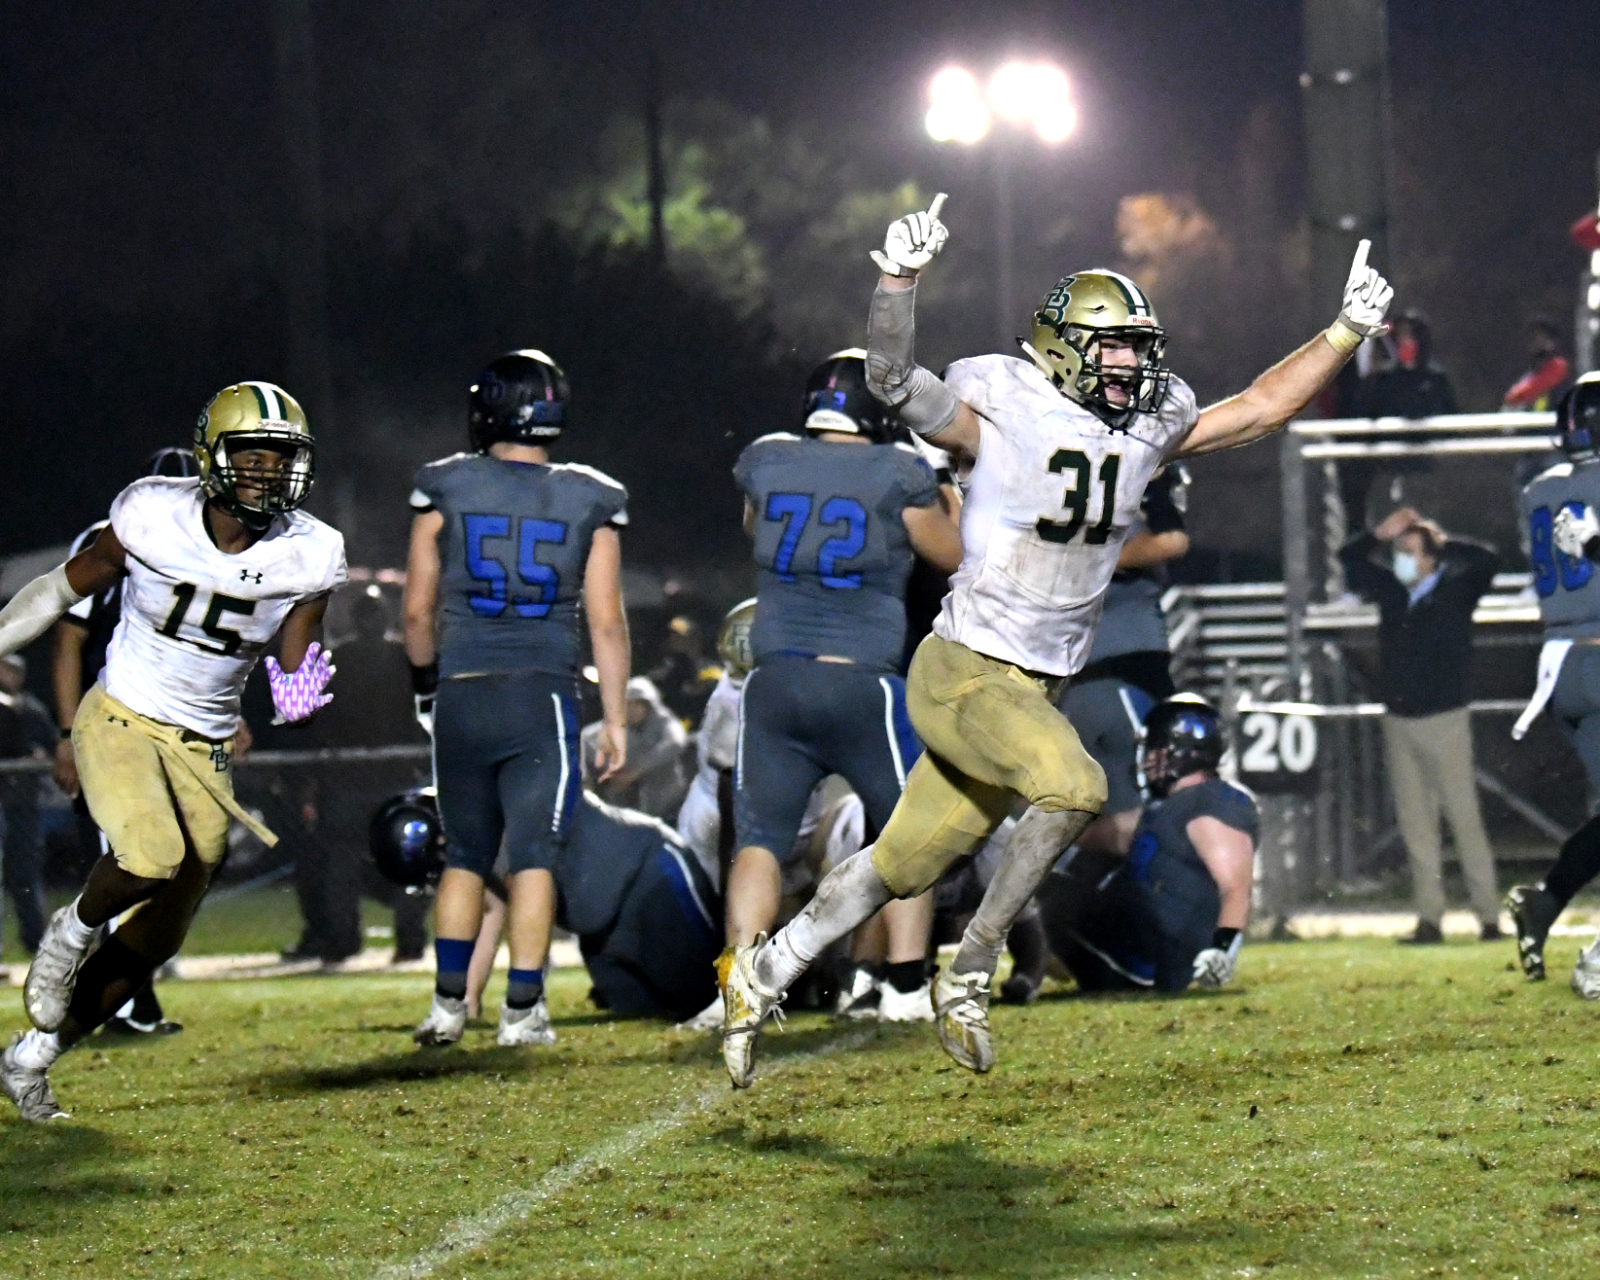 Photo Gallery: Football vs Ft. Dorchester in Rd. 1 of Playoffs